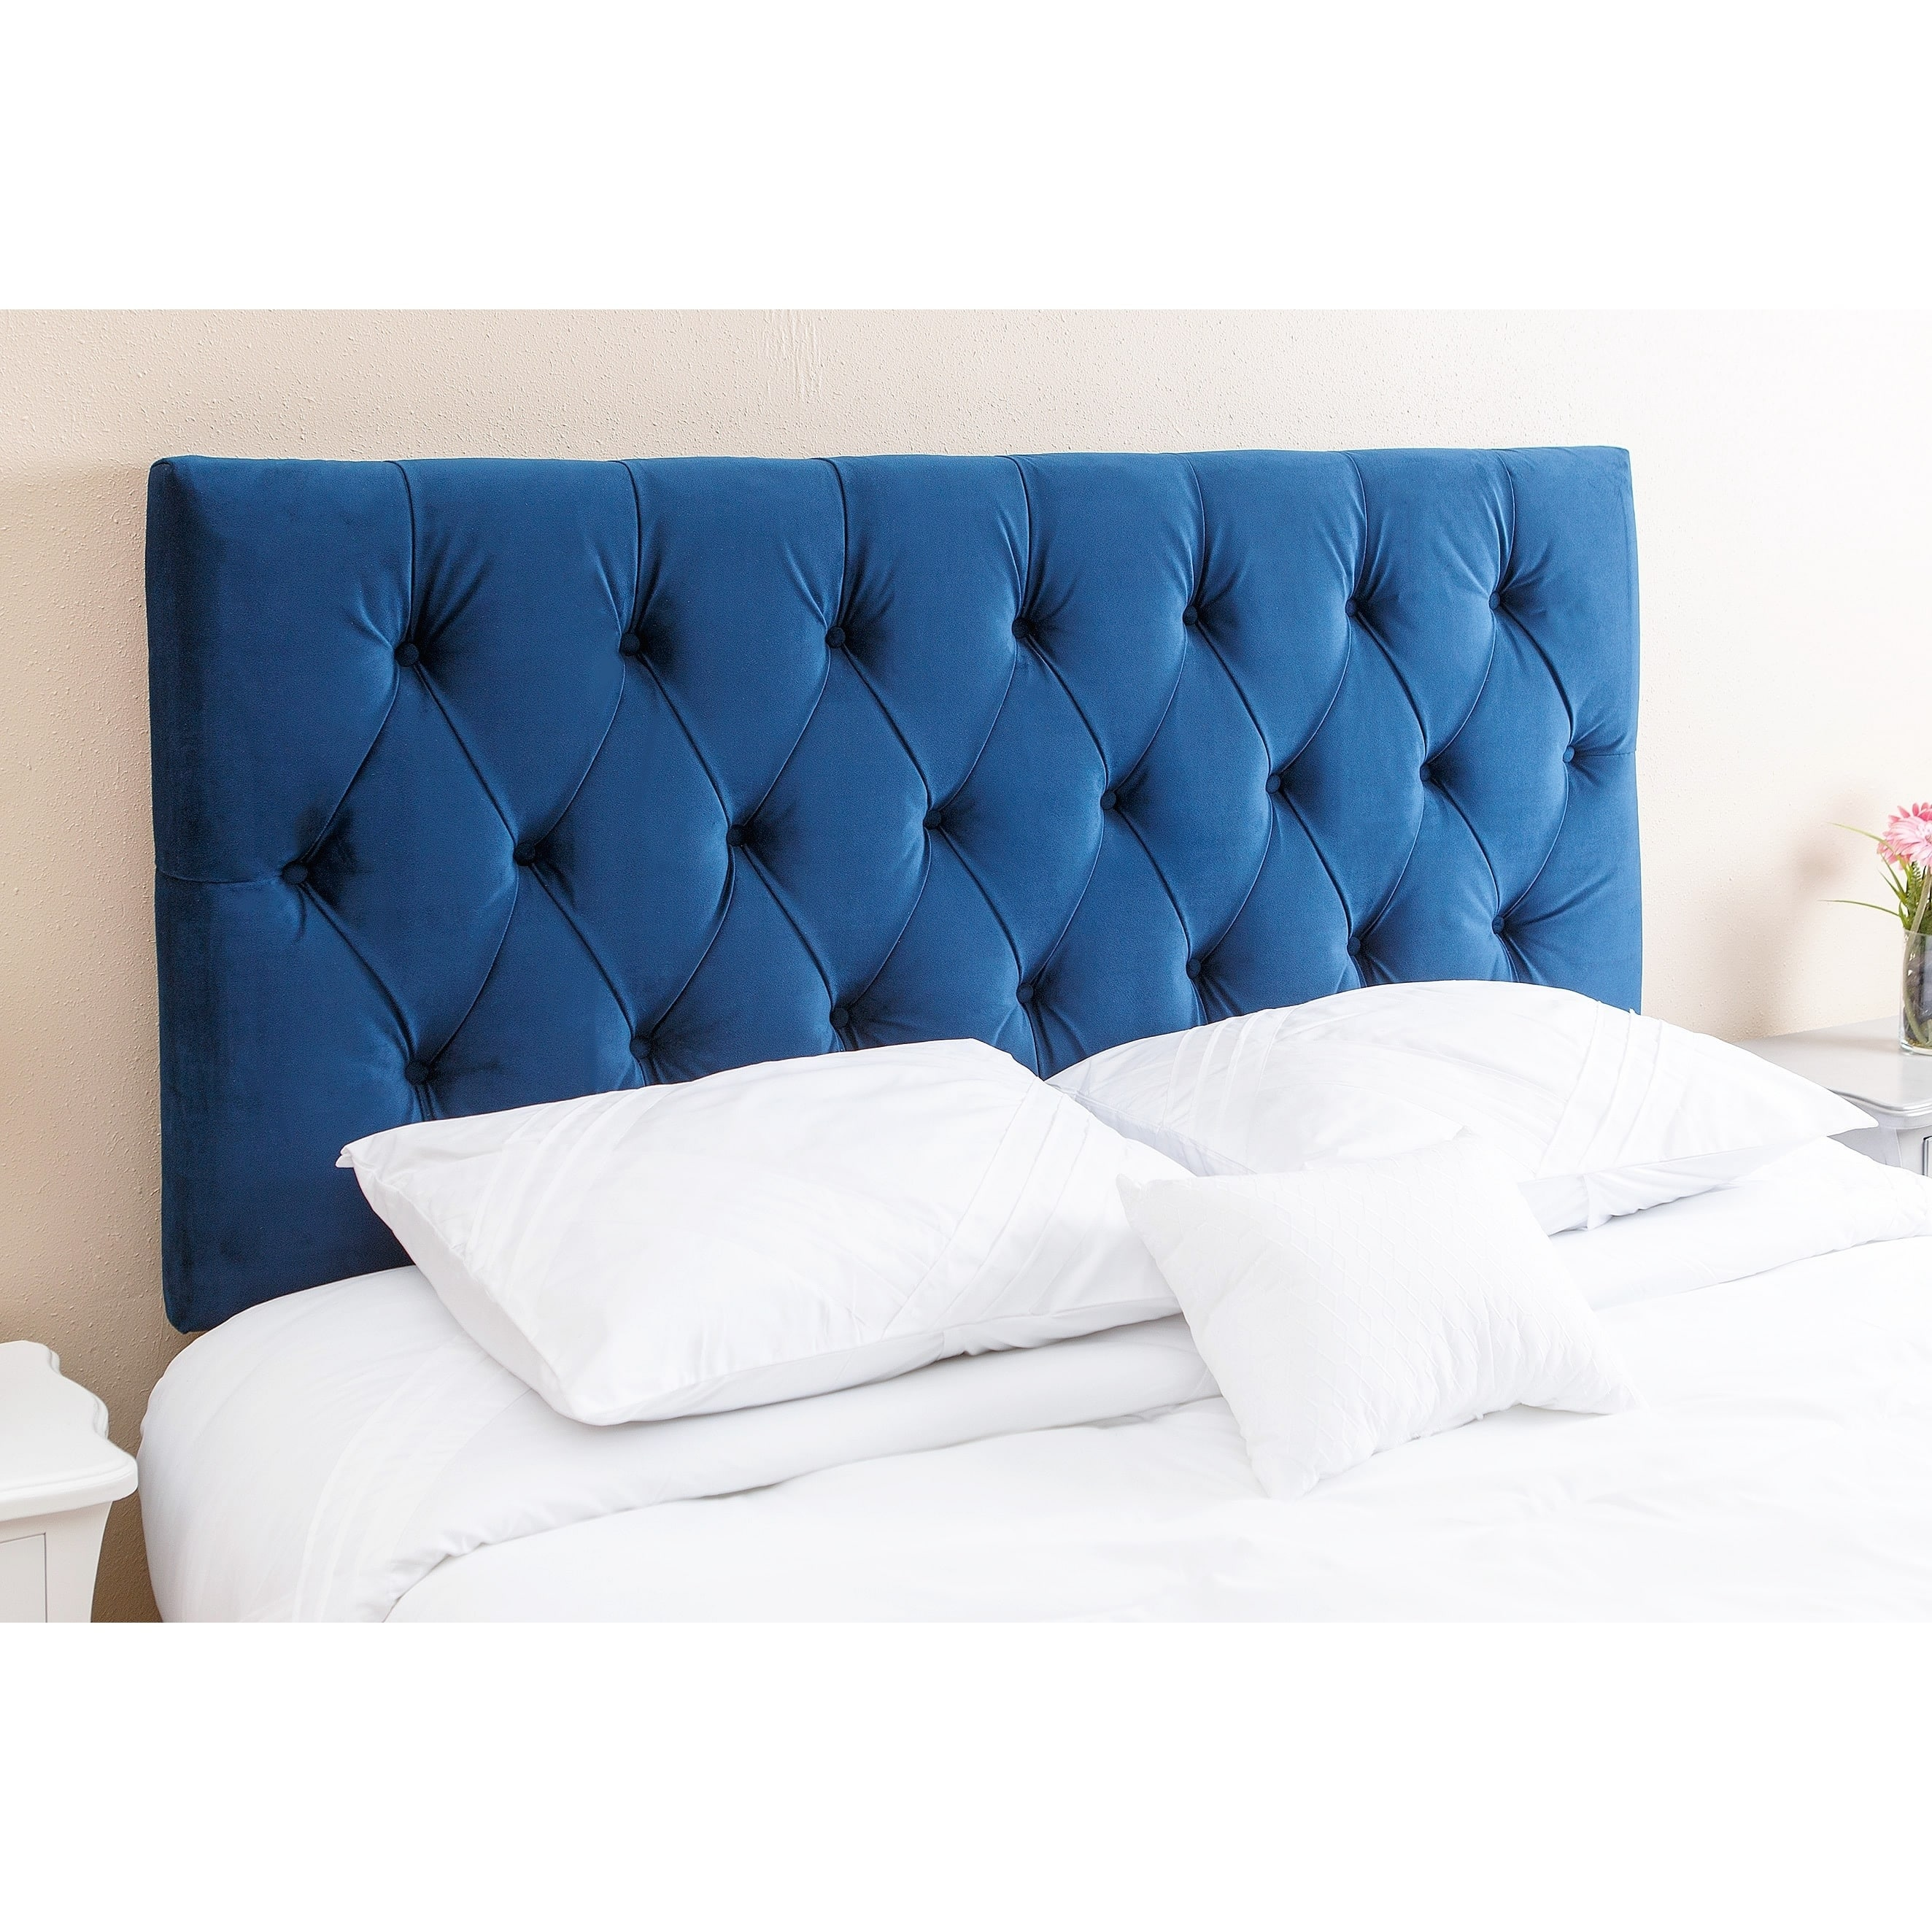 abbyson connie tufted navy blue velvet headboard queenfull  freeshipping today  overstockcom  . abbyson connie tufted navy blue velvet headboard queenfull